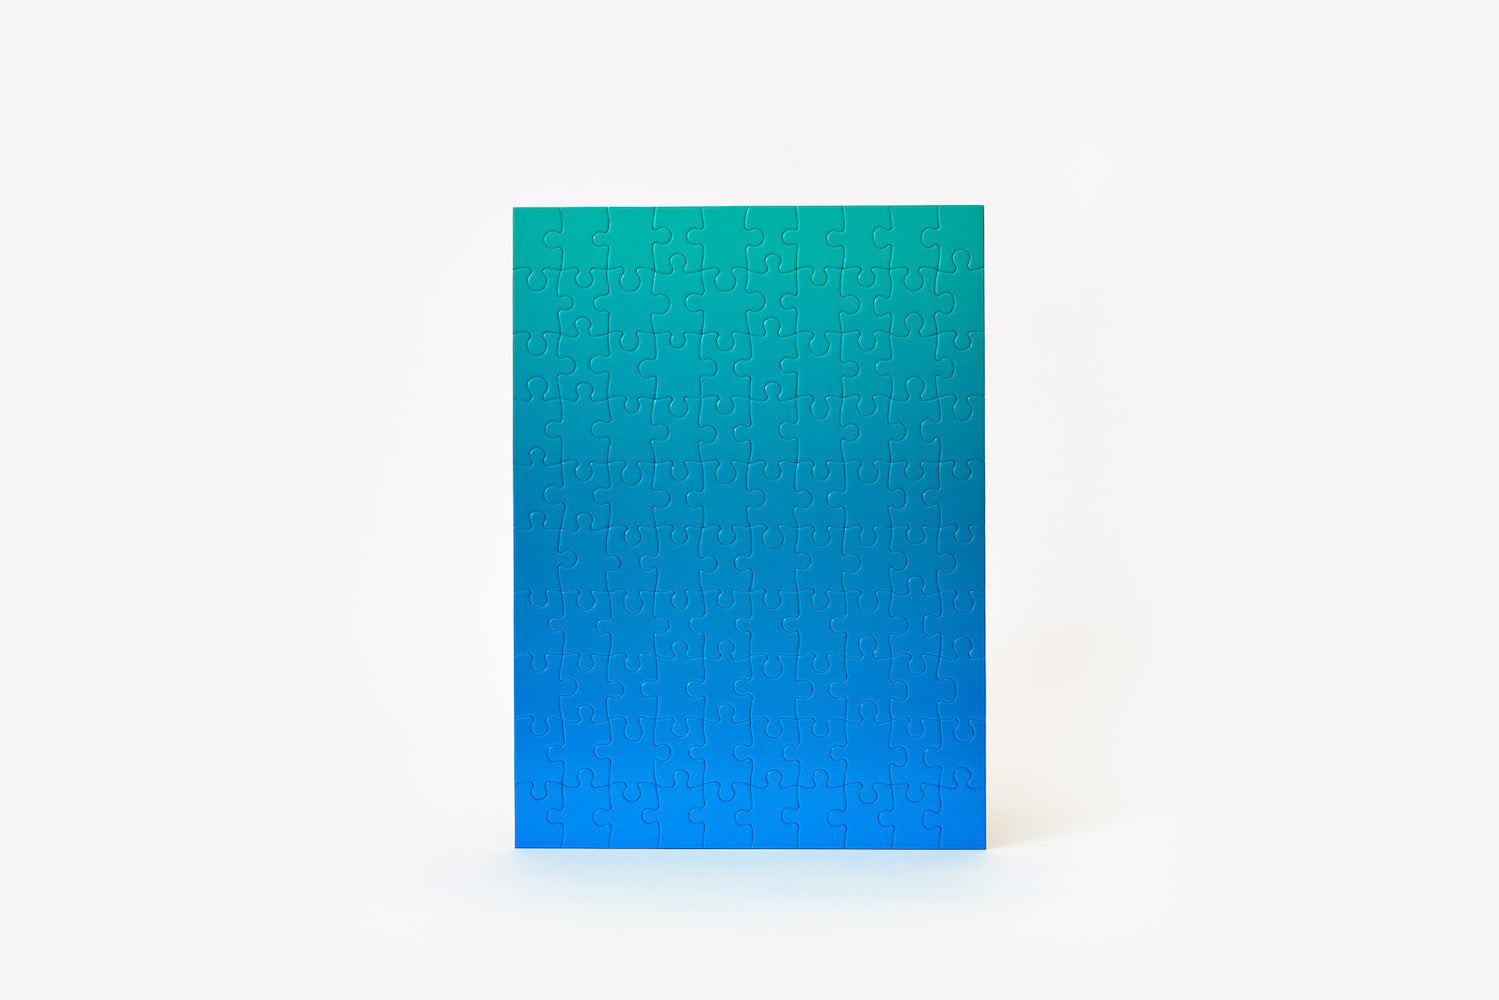 Gradient Puzzle - Blue/Green - 100 pieces